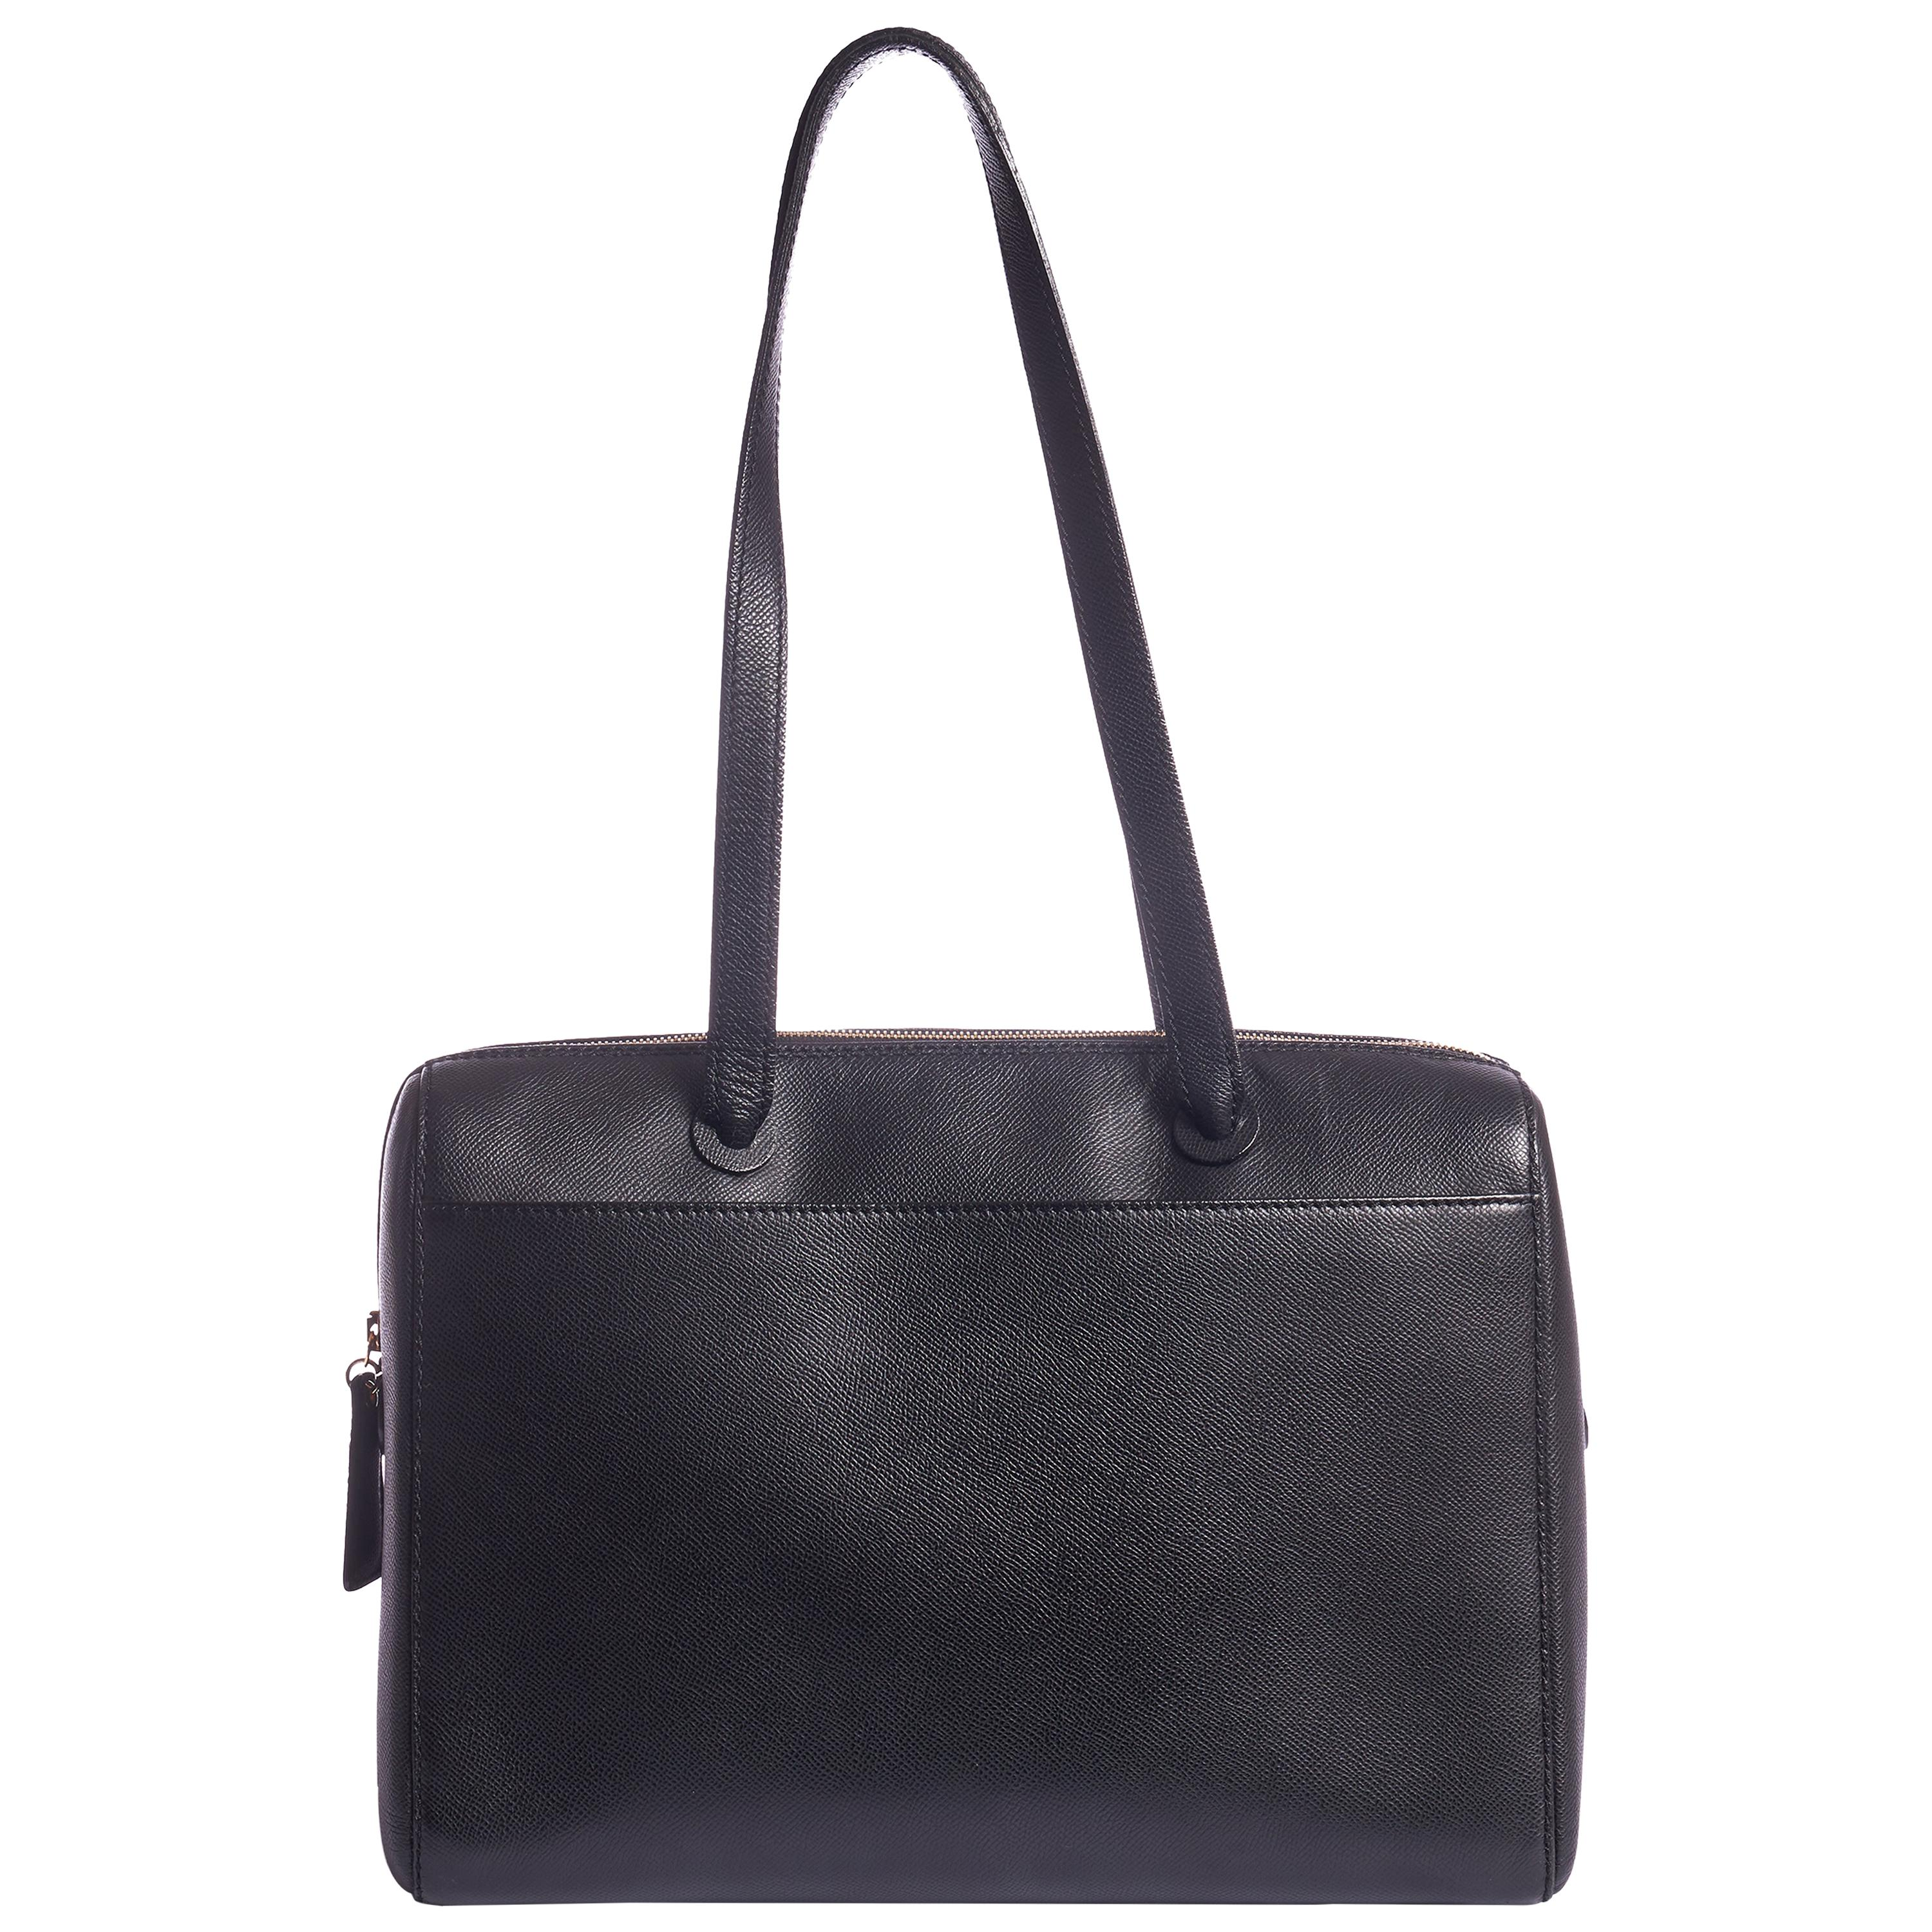 1990's Vintage Chanel Epsom Black Leather Zipped Tote